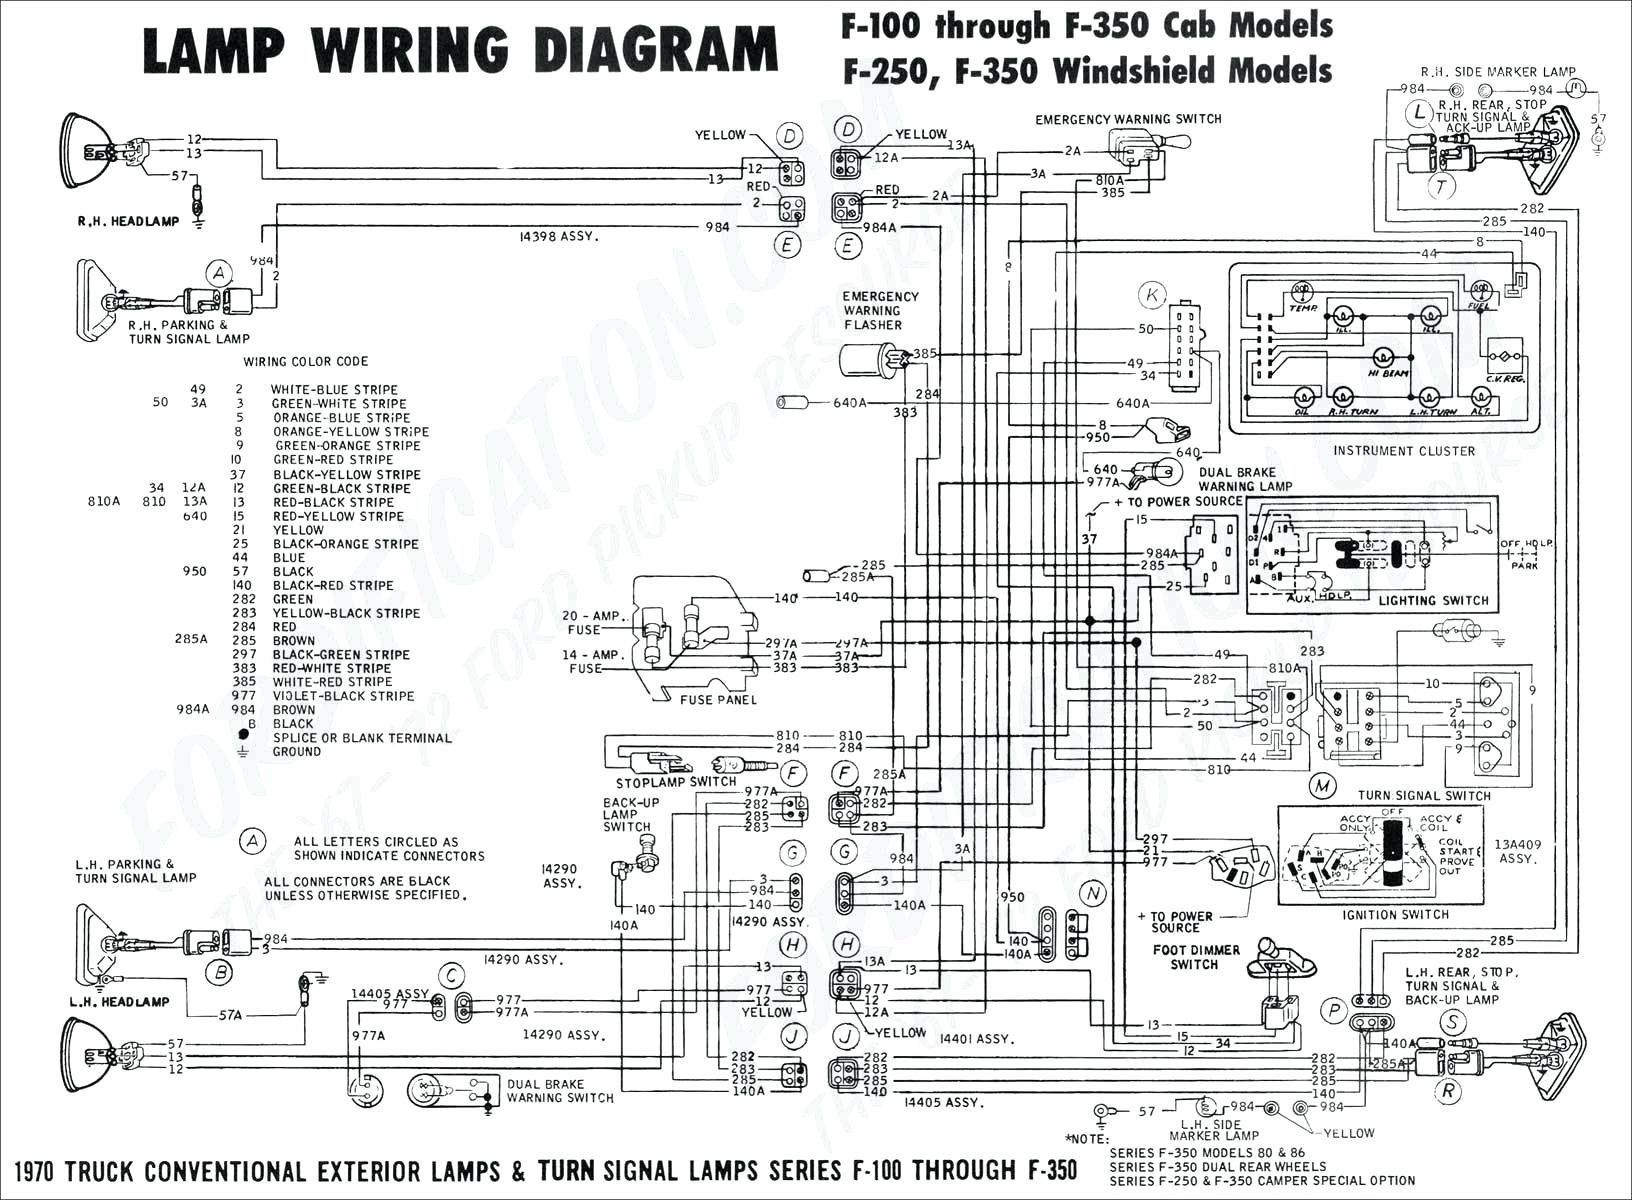 Subaru Forester Wiring Diagram Heater